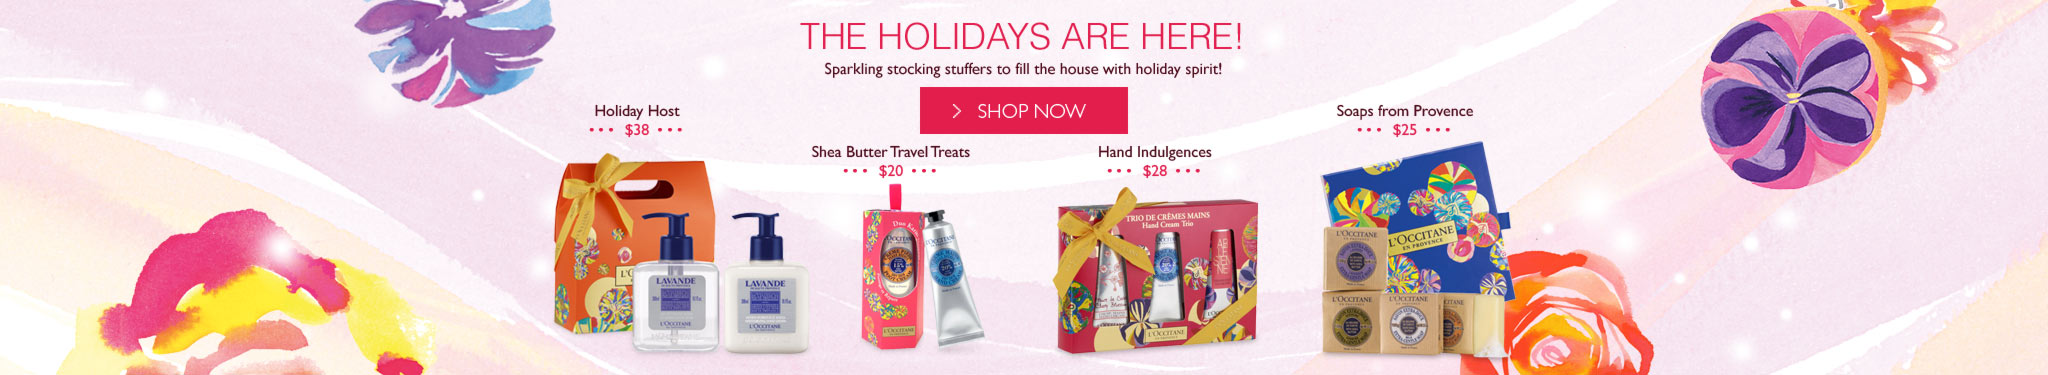 The Holidays are here. Sparkling stocking stuffers to fill the house with holiday spirit